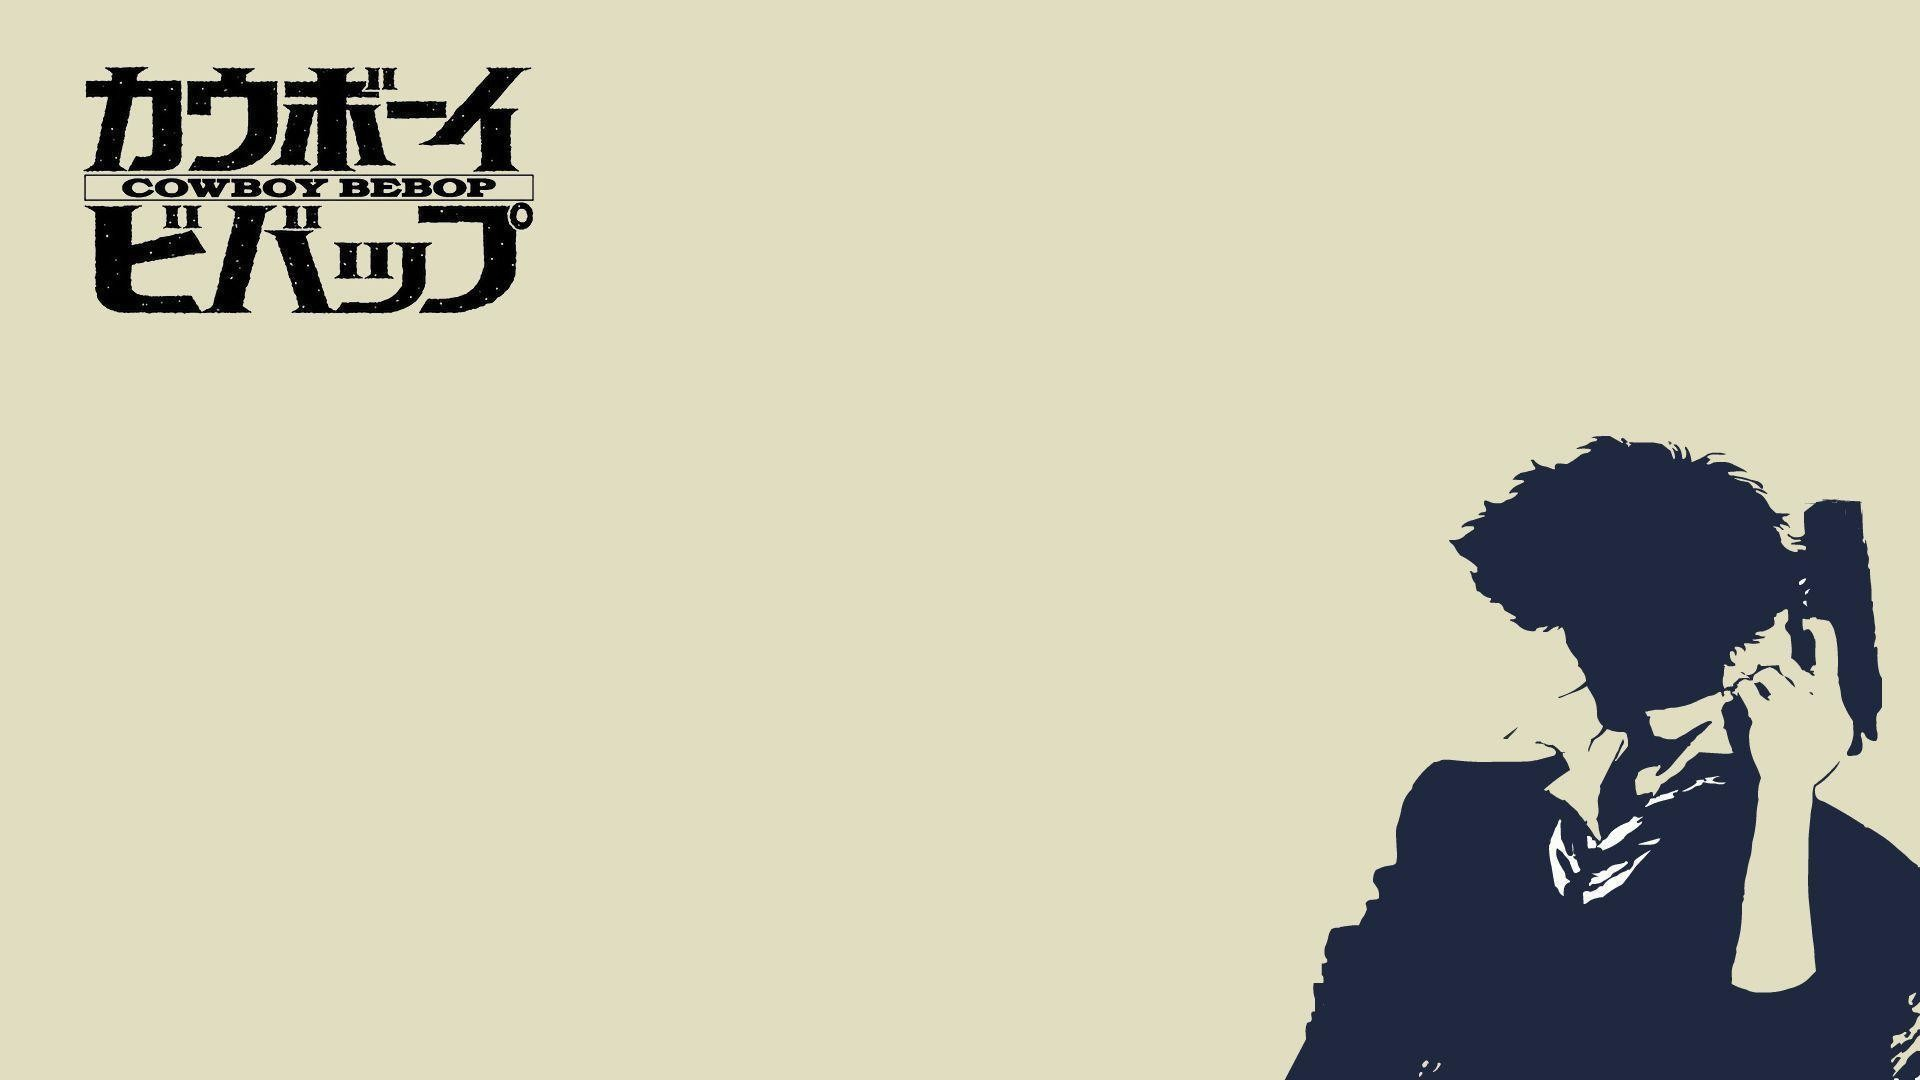 cowboy bebop wallpaper hd